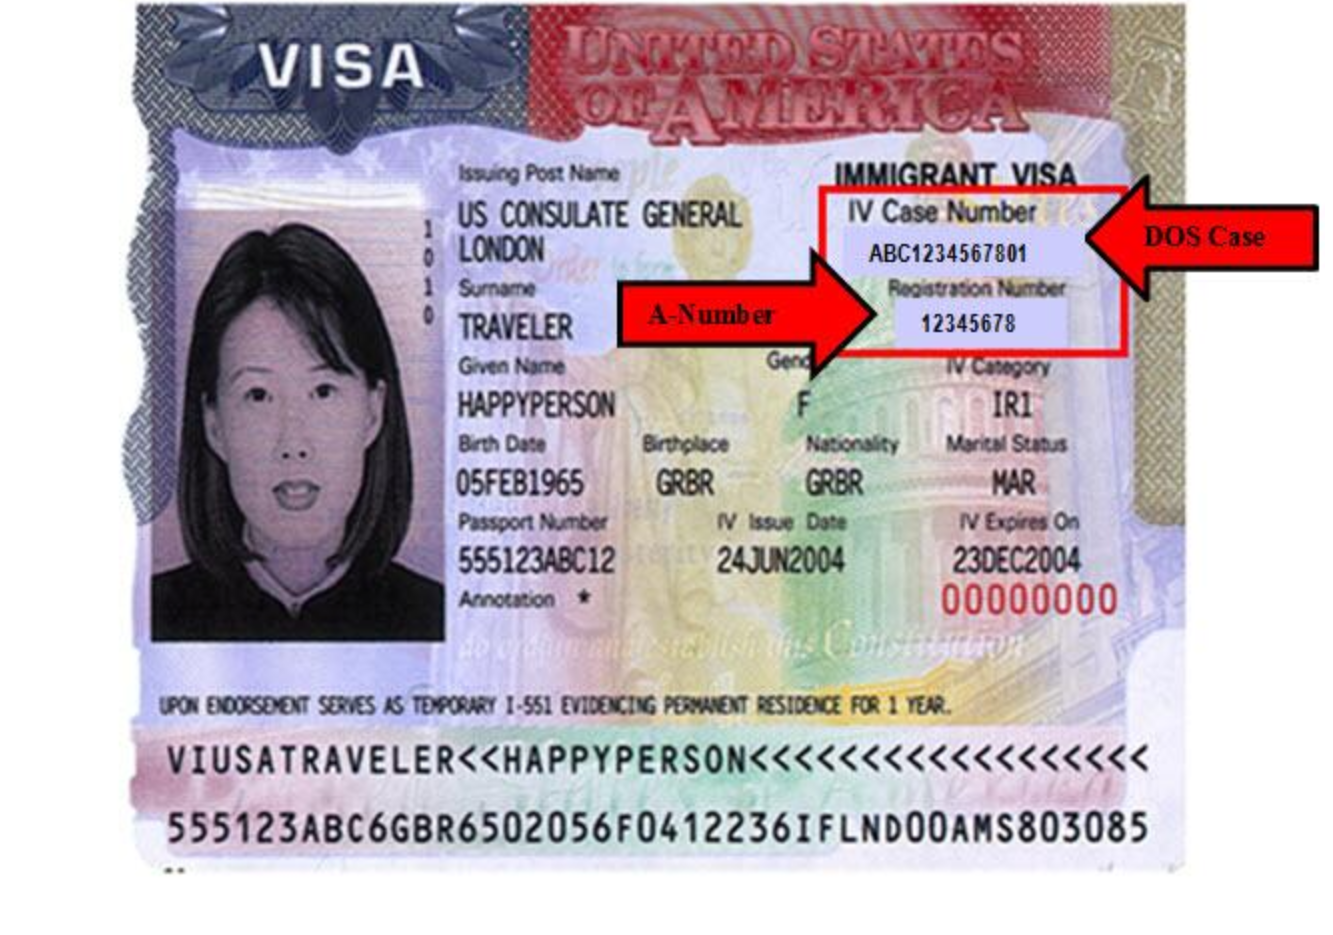 Alien Registration Number on U.S. Visa